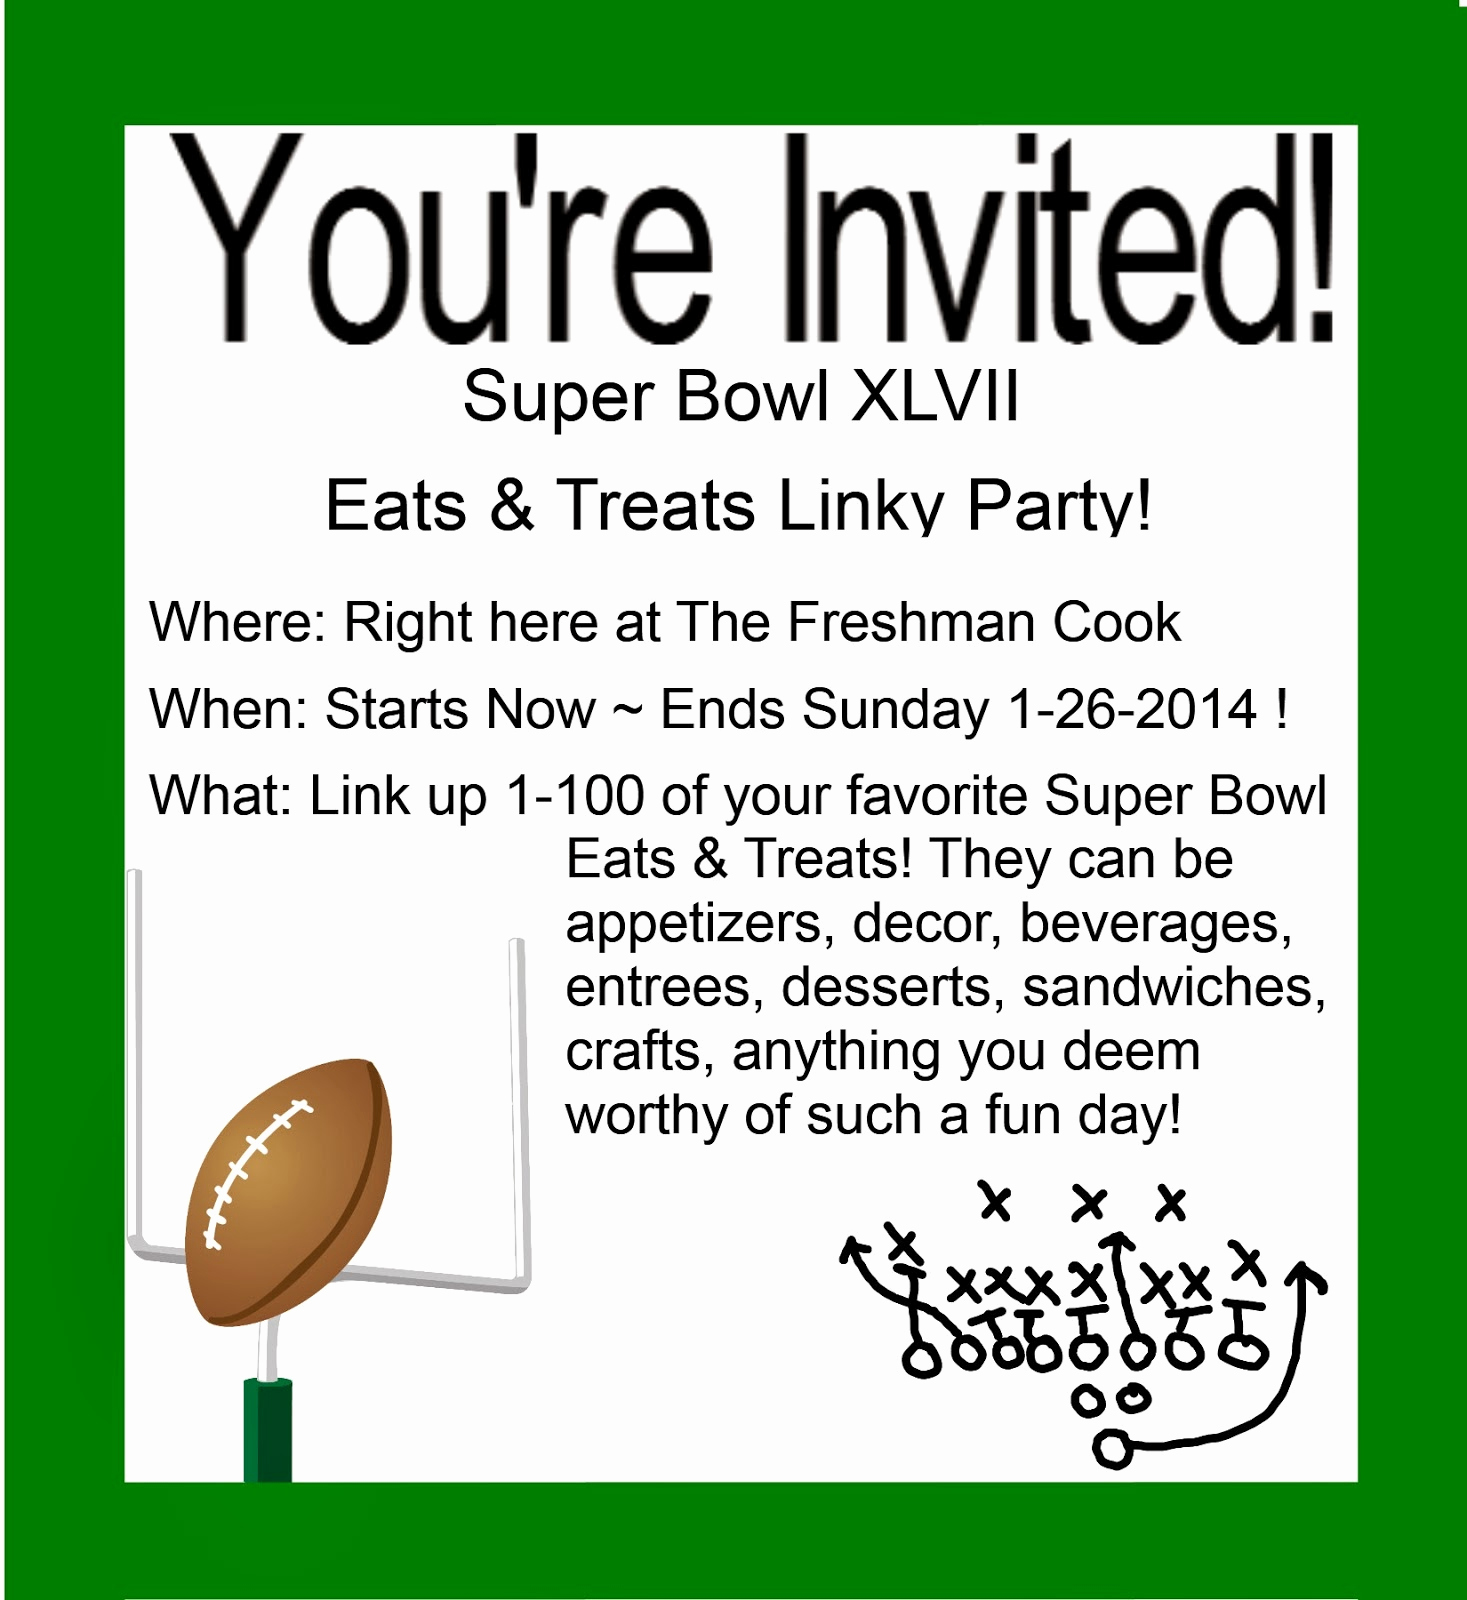 Superbowl Party Invitation Wording Inspirational the Freshman Cook Super Bowl Linky Party